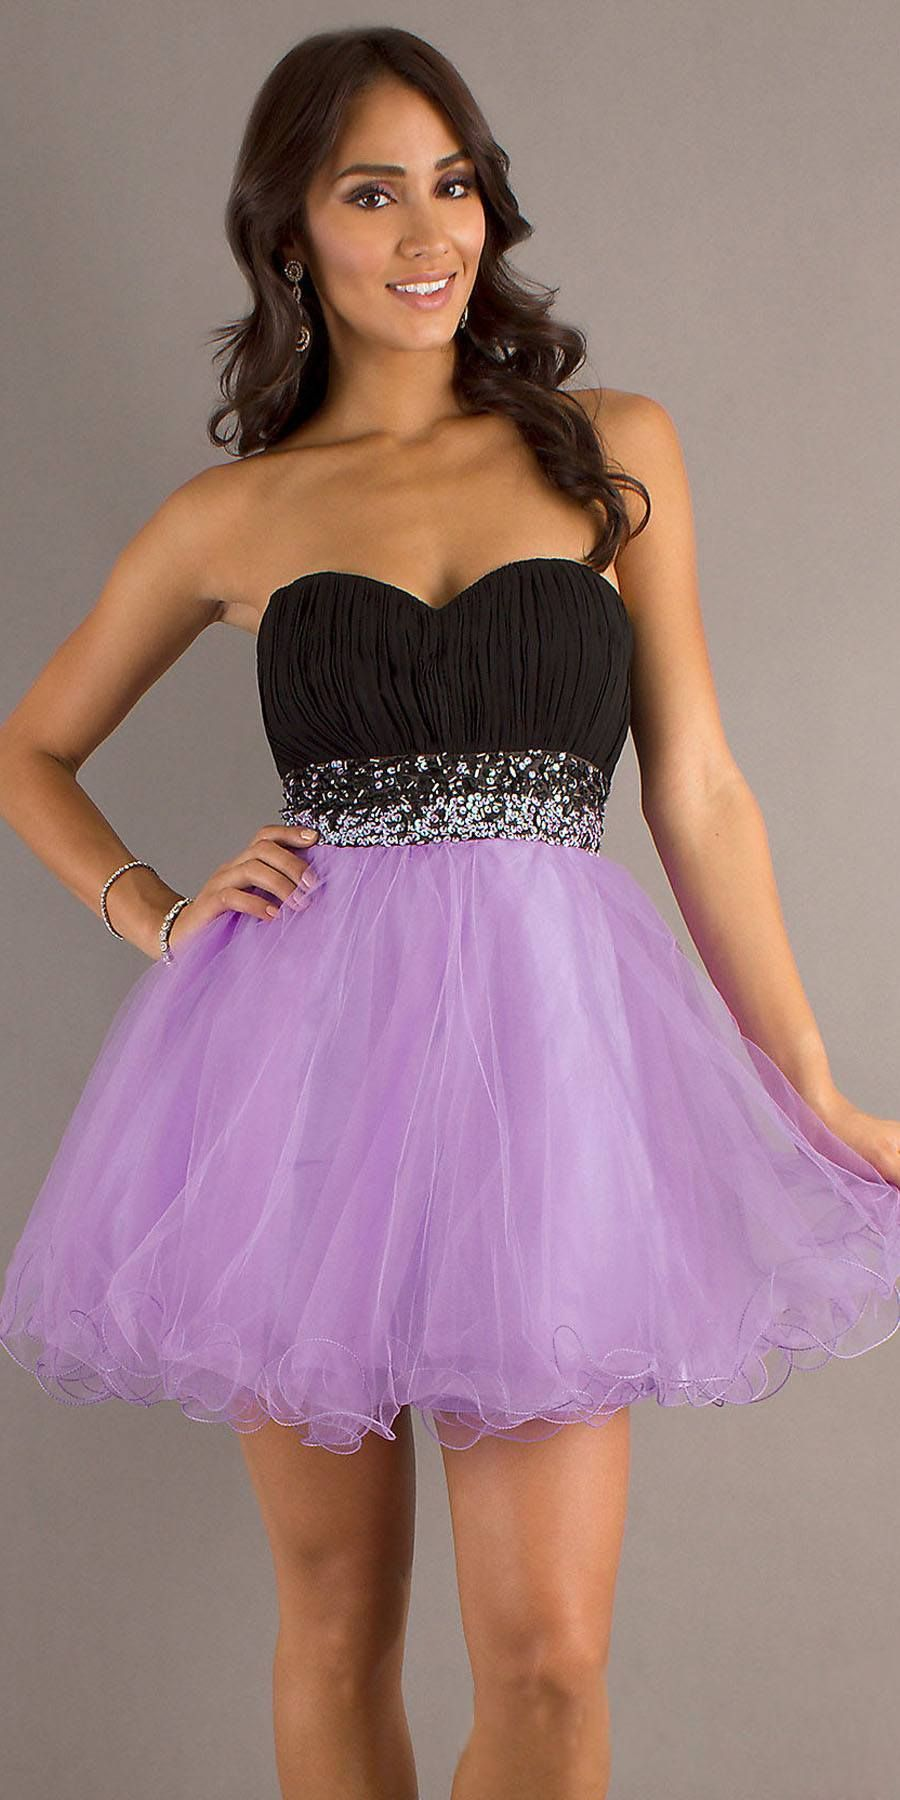 85e31eca0f81 CLEARANCE - Short Poofy Black Lilac Homecoming Dress Pleated Bodice Empire  (Size 2XL)